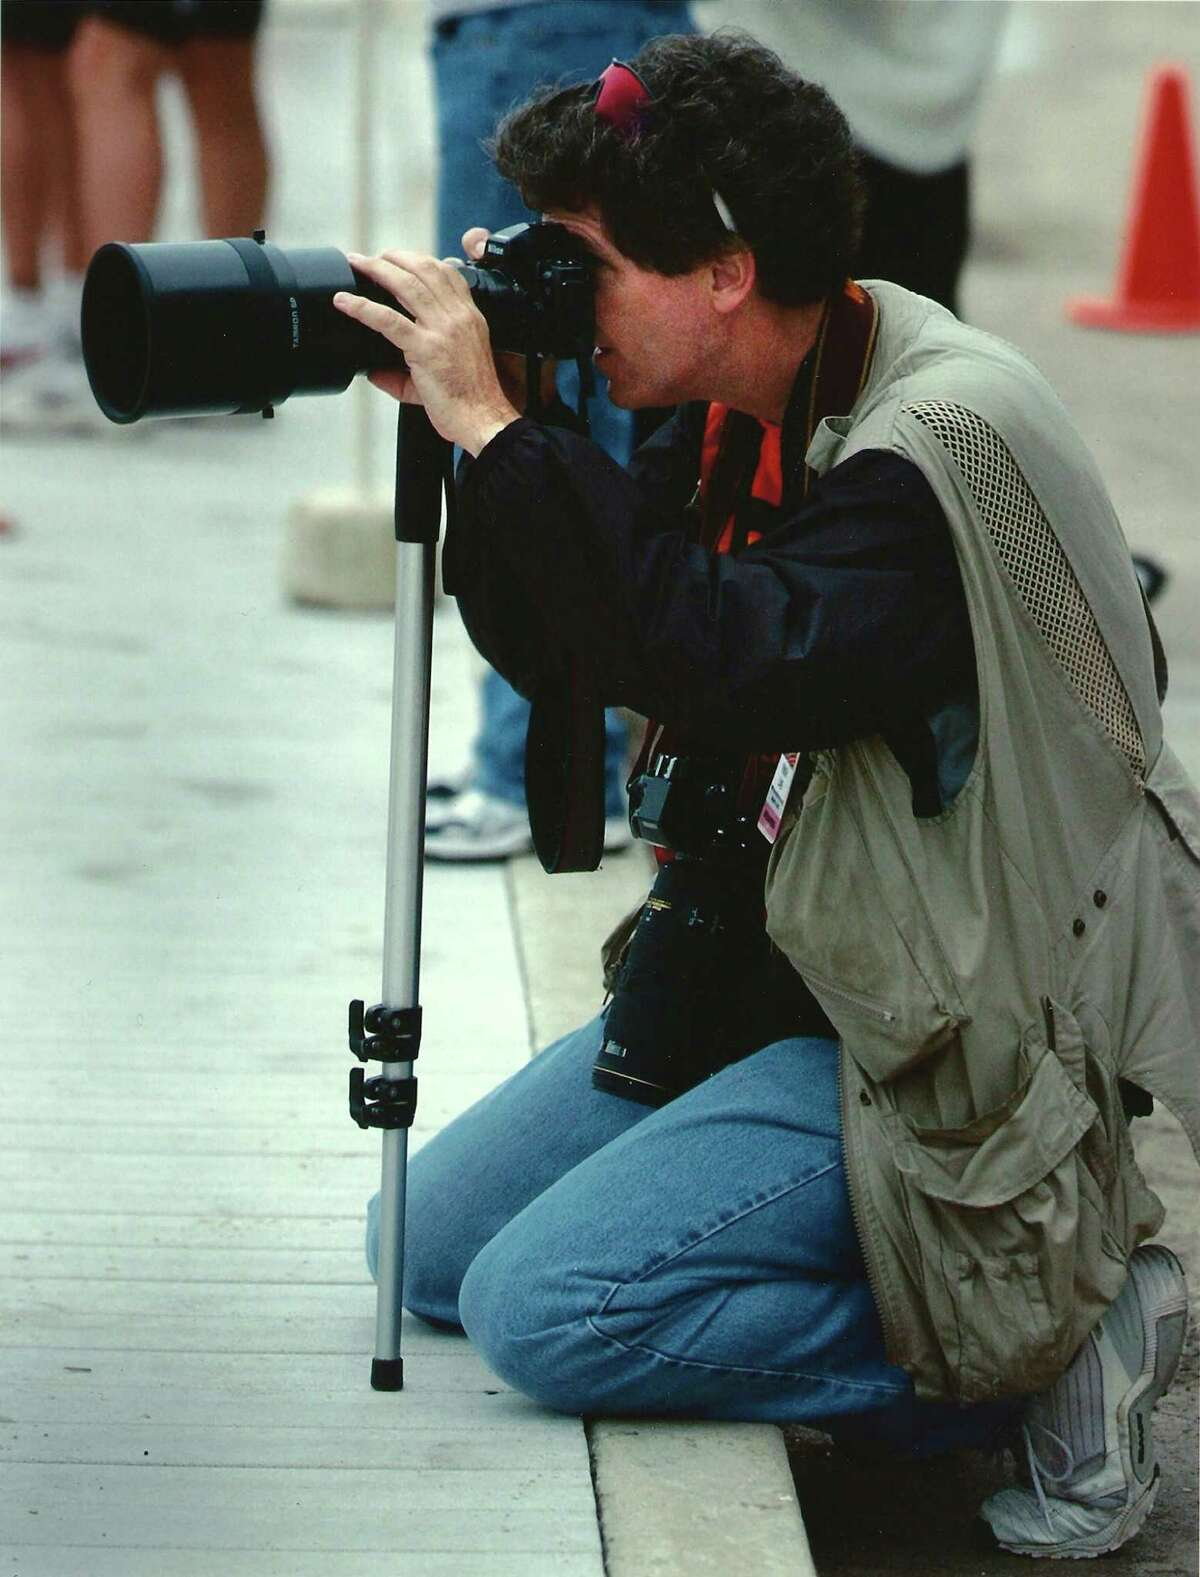 Judge Bert Richardson photographing an event in 2002.